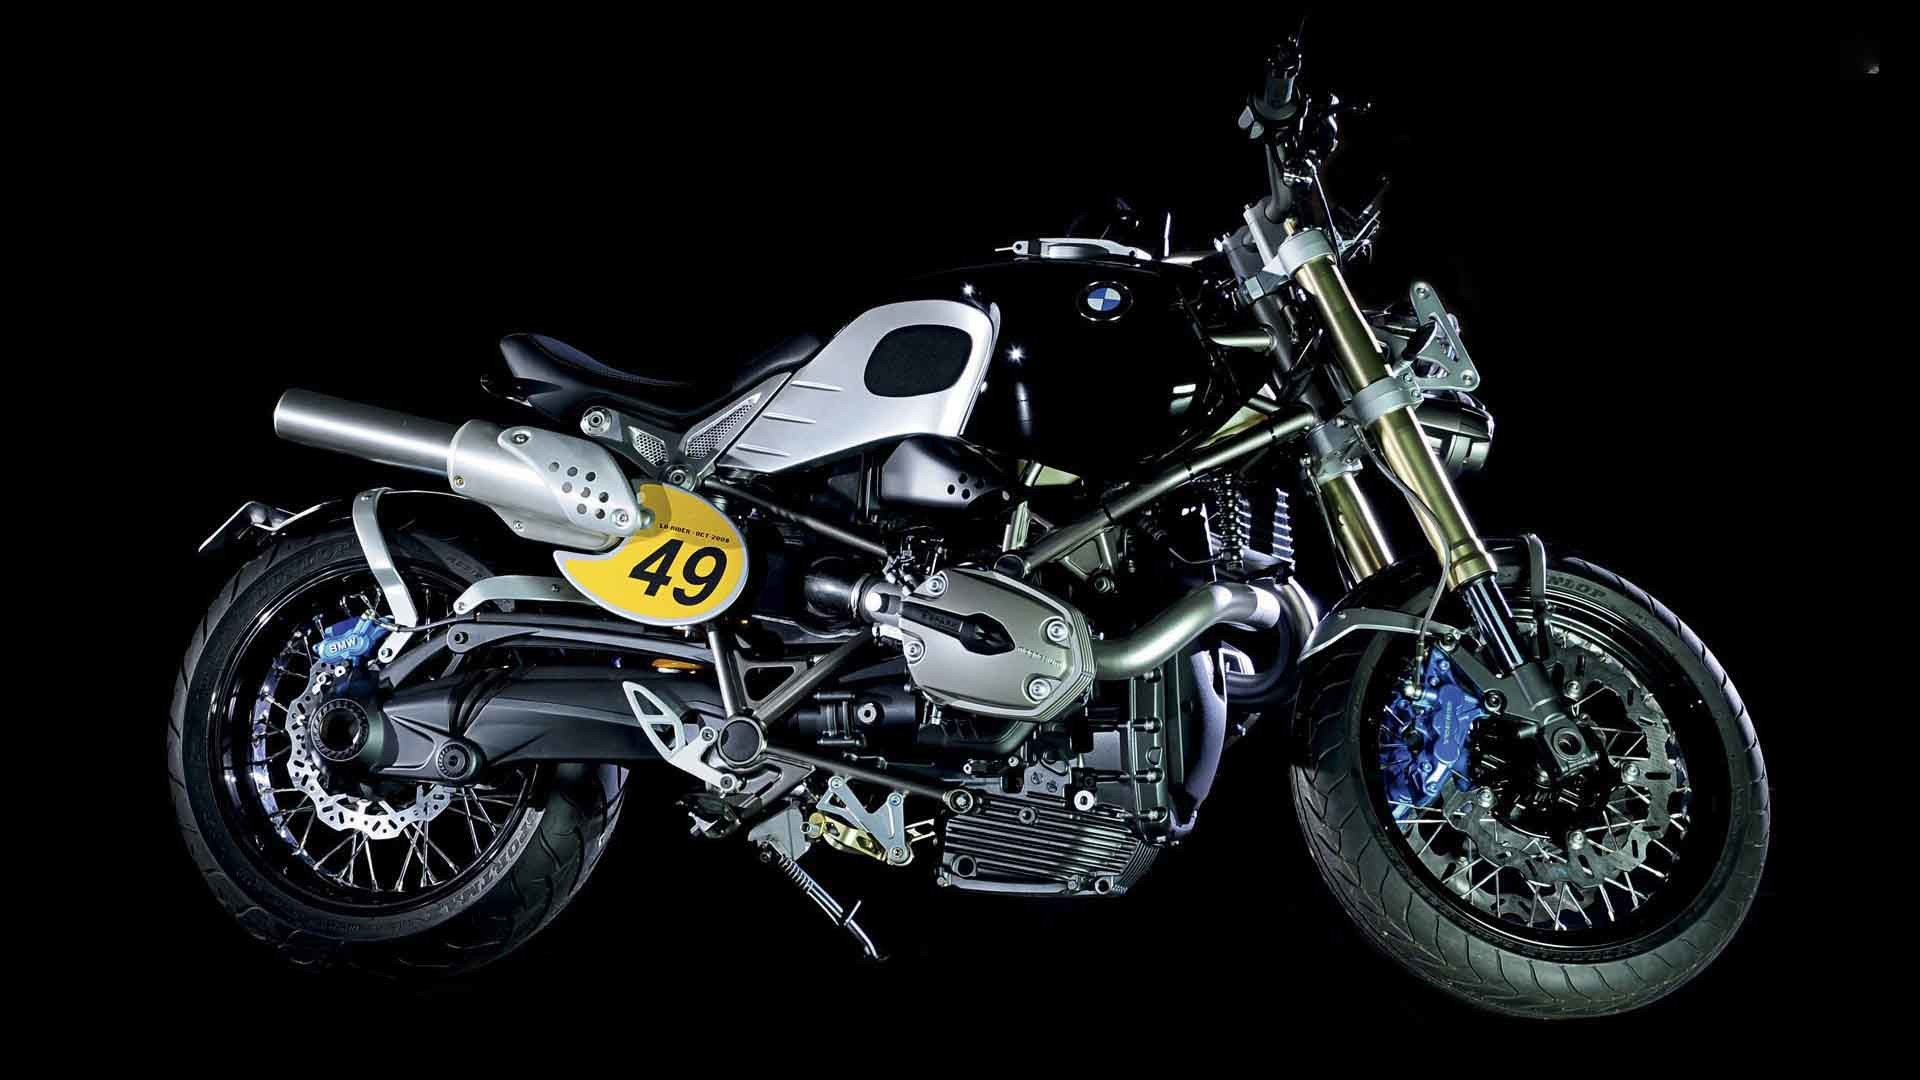 Bmw Moto Hd Wallpapers Hd Car Wallpapers: Motorbike Wallpapers (59+ Images